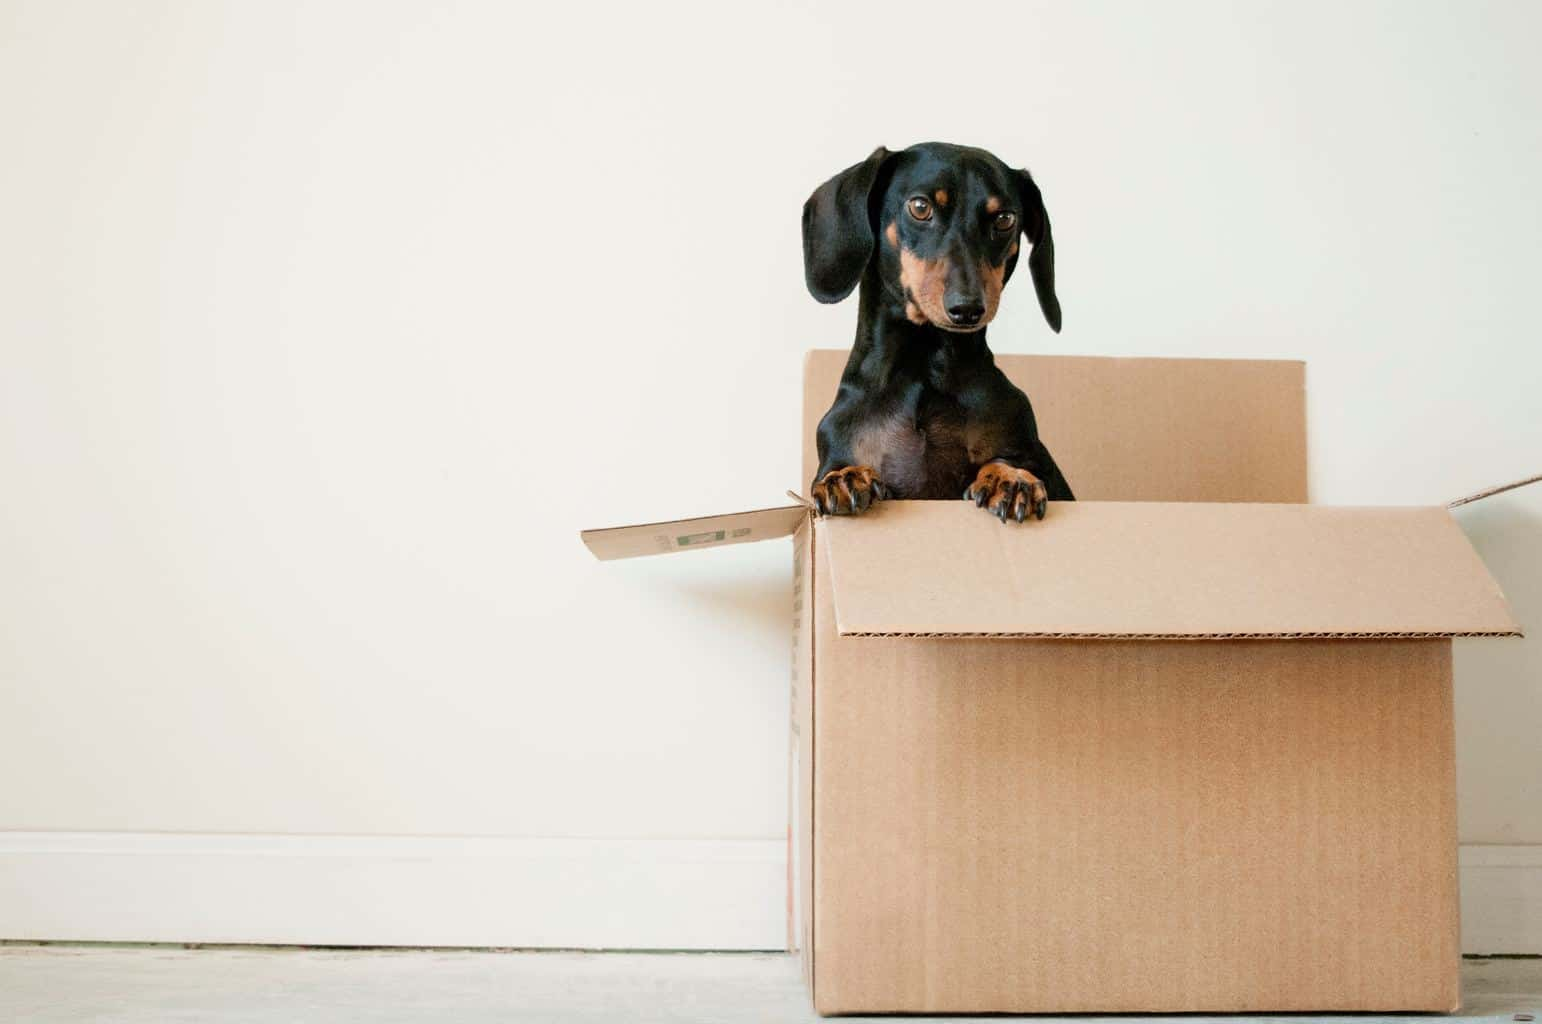 black and brown a dog standing in box